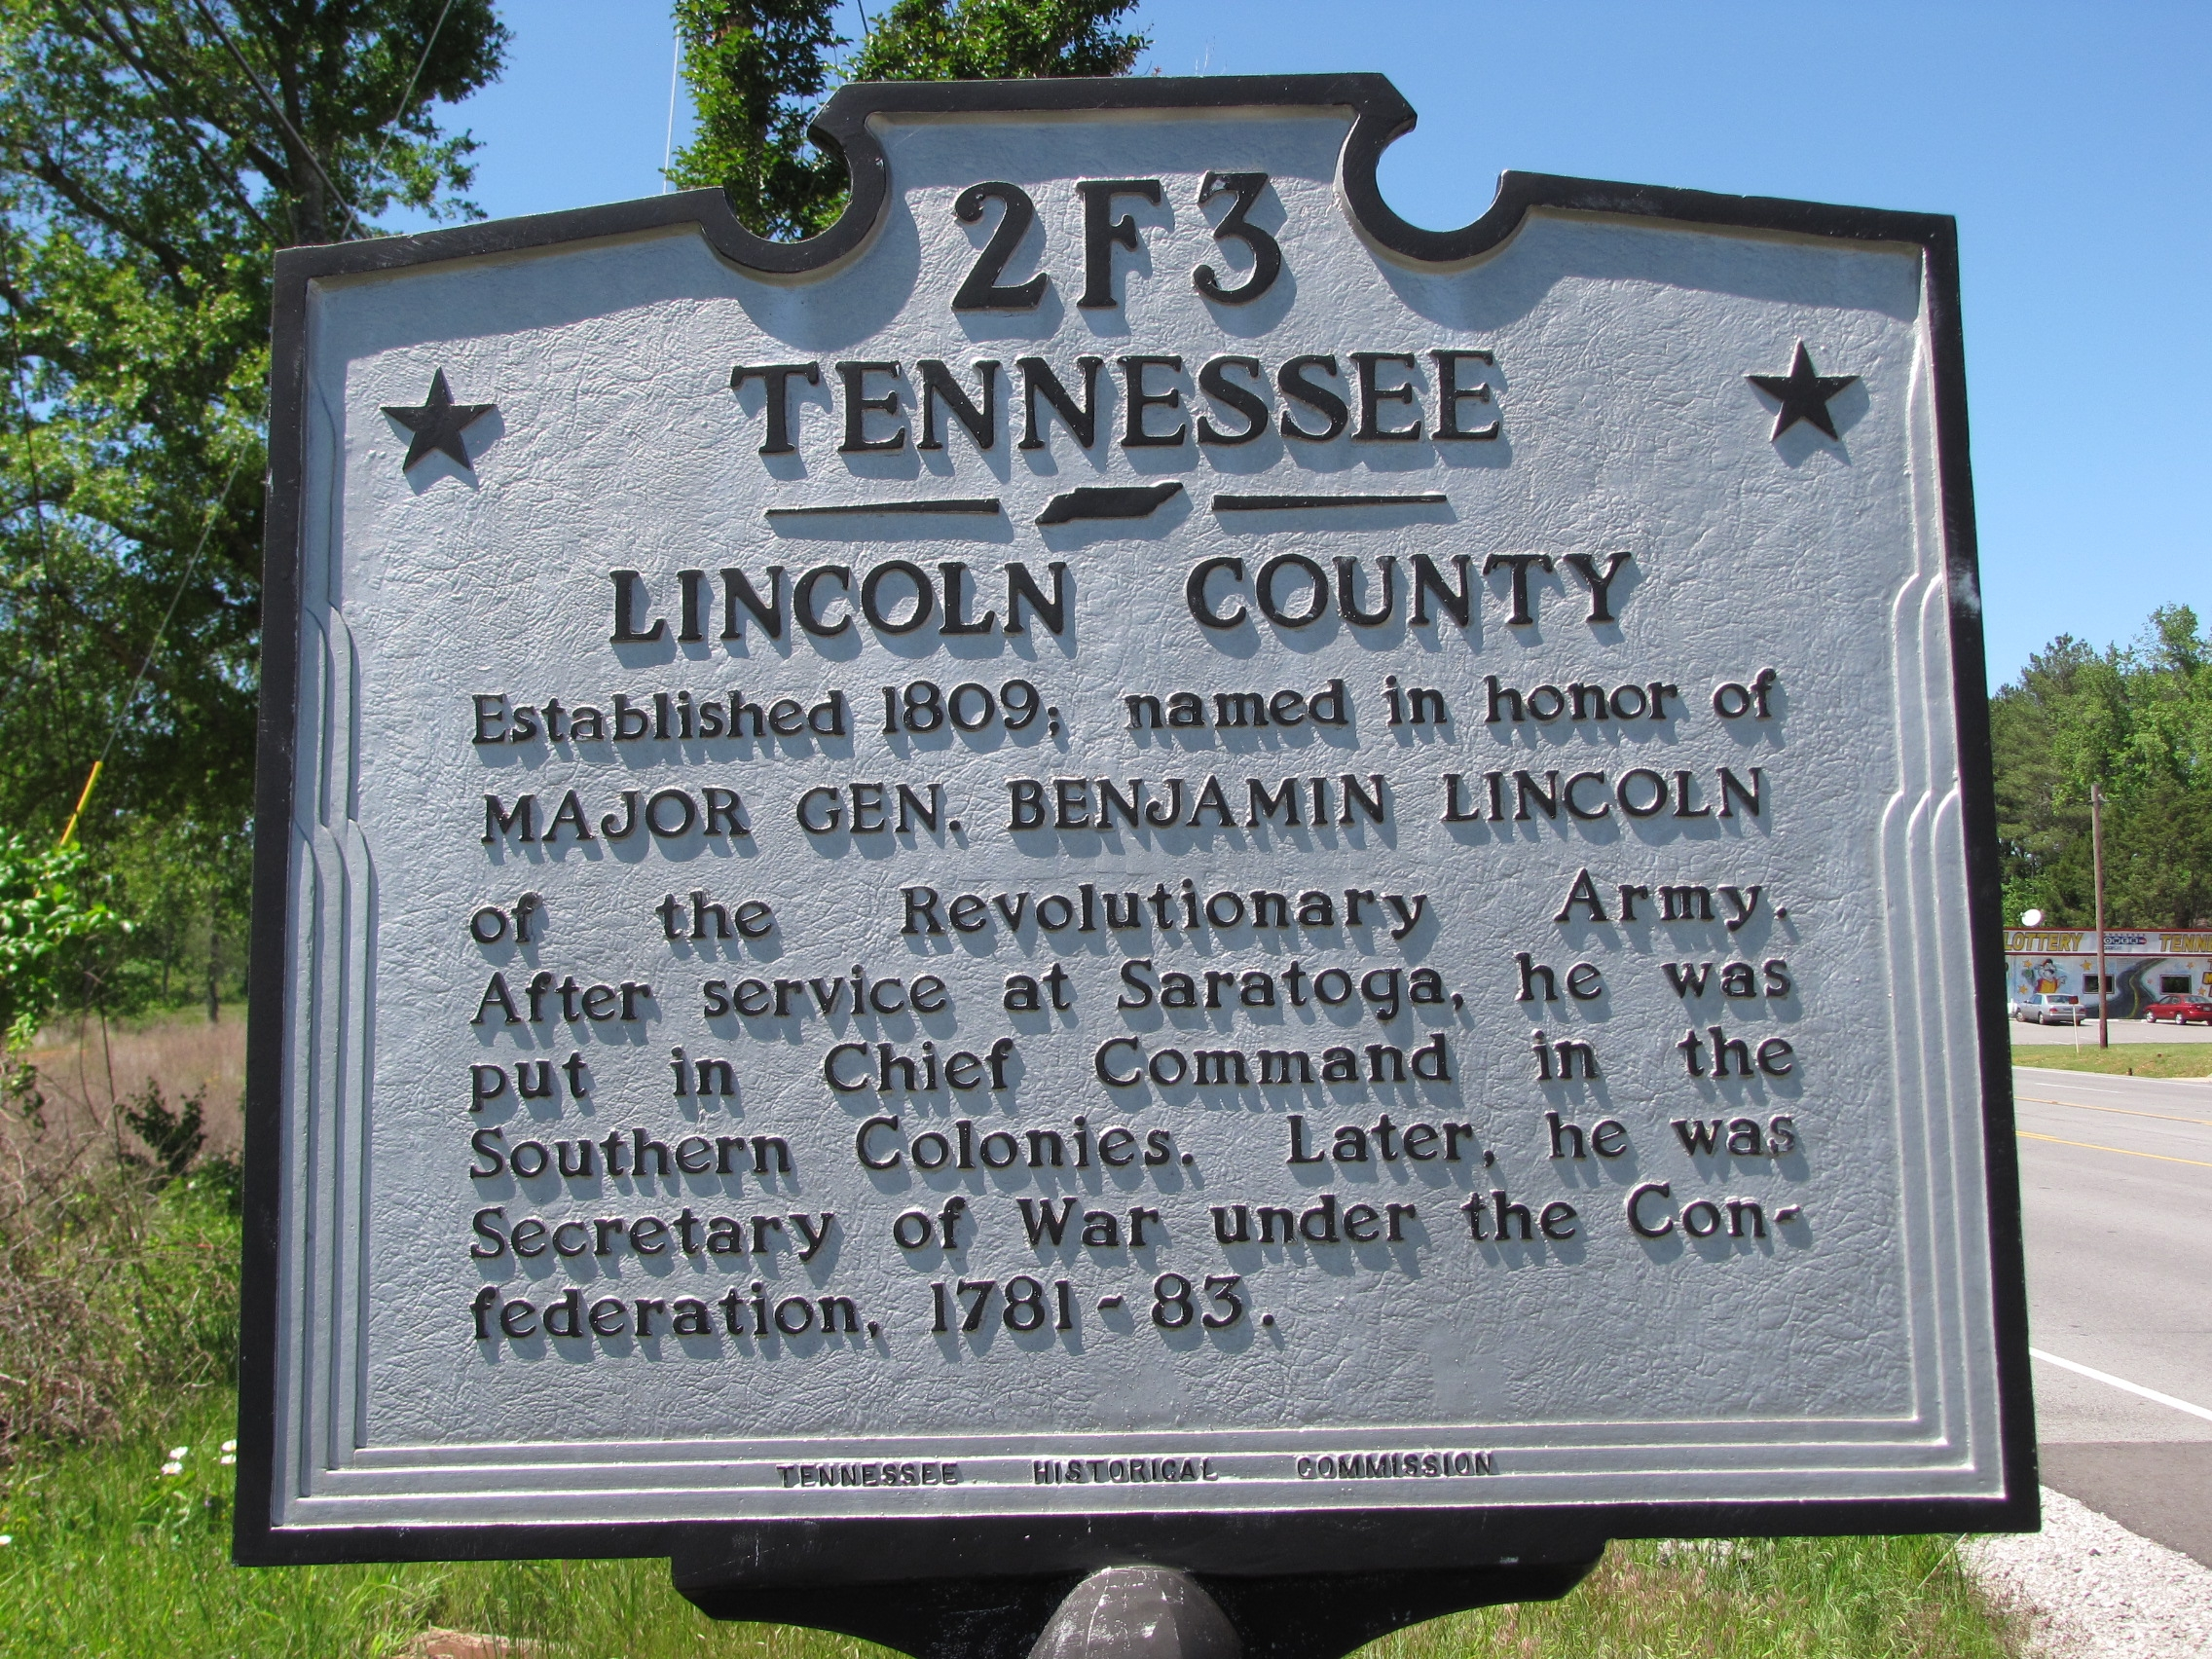 Tennessee / Alabama Marker